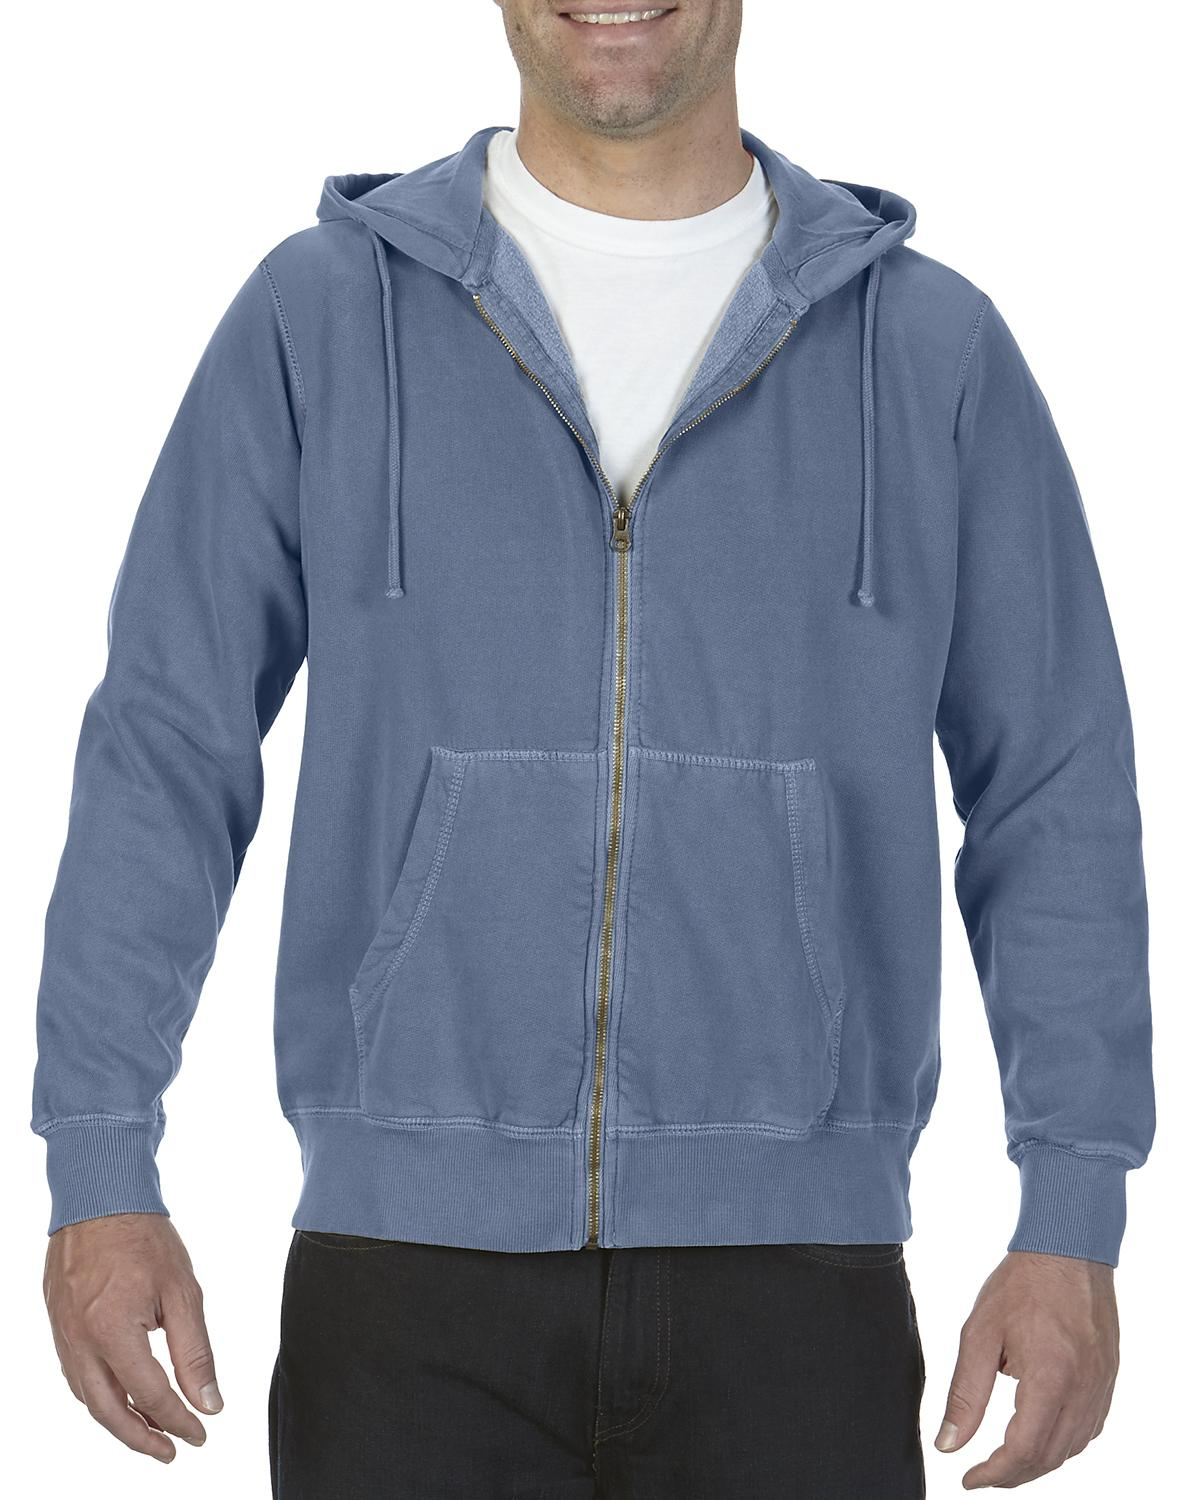 Adult Full-Zip Hooded Sweatshirt